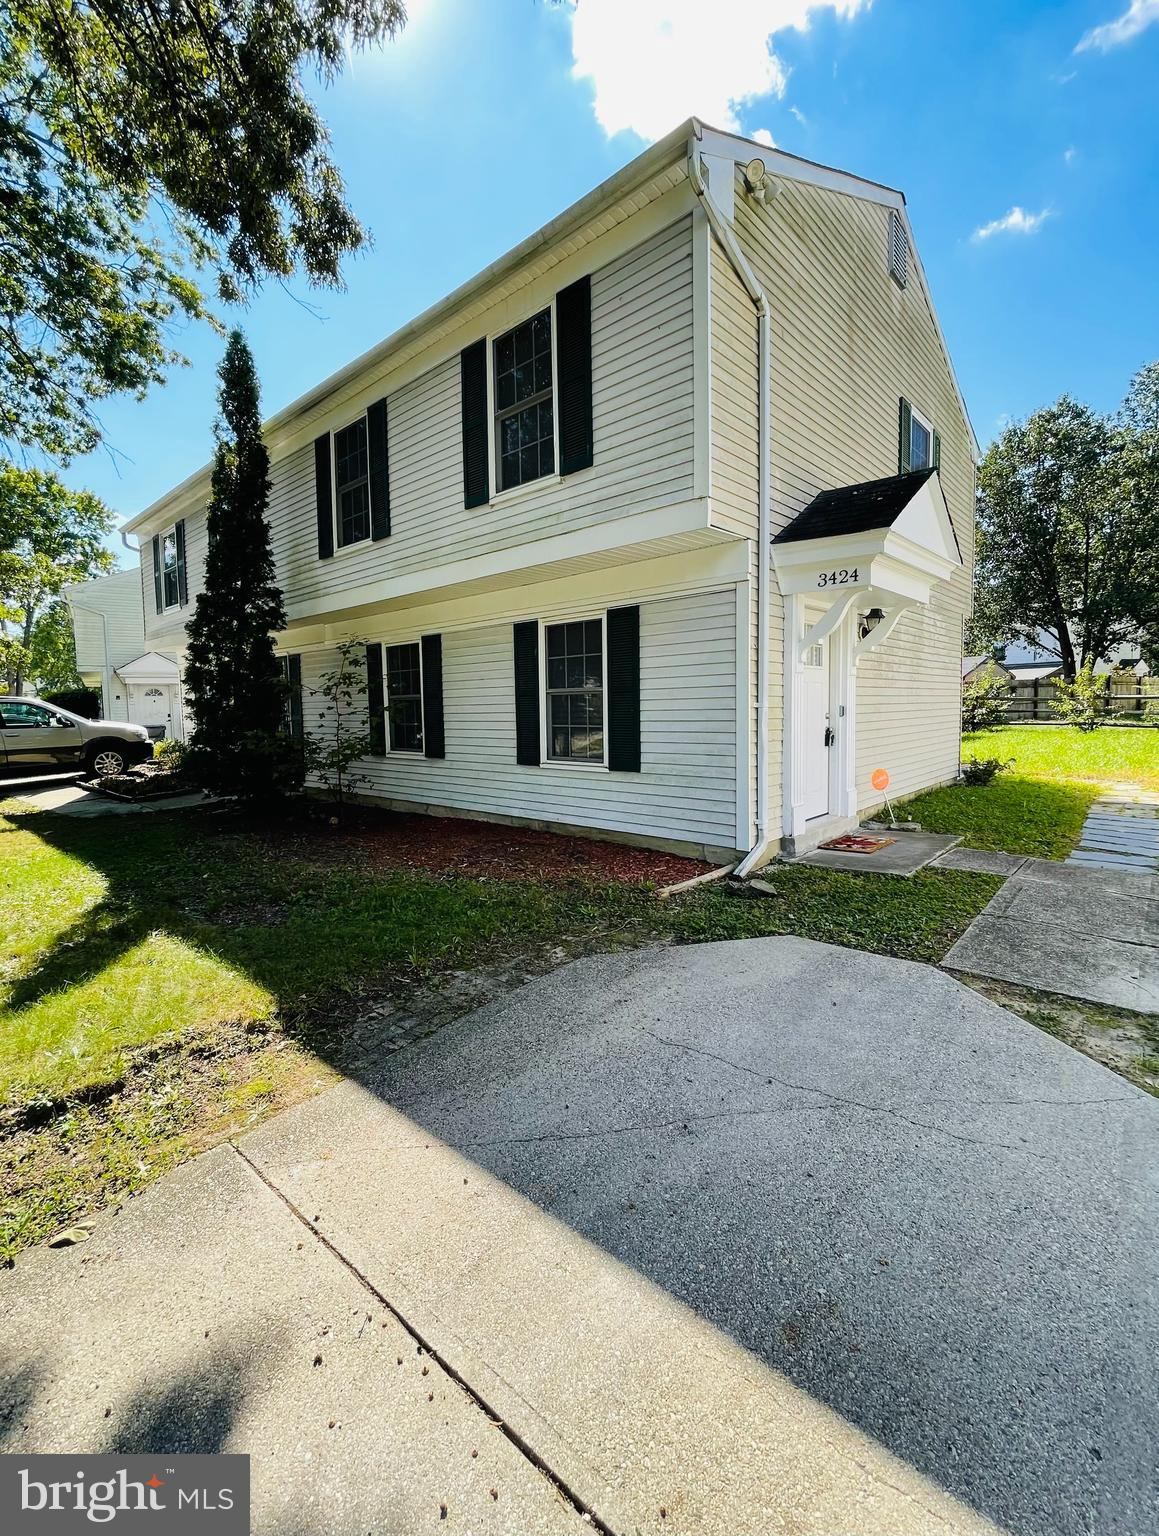 This charming 3 bedroom, 1 full bath home will be hitting the market just in time for the weekend!